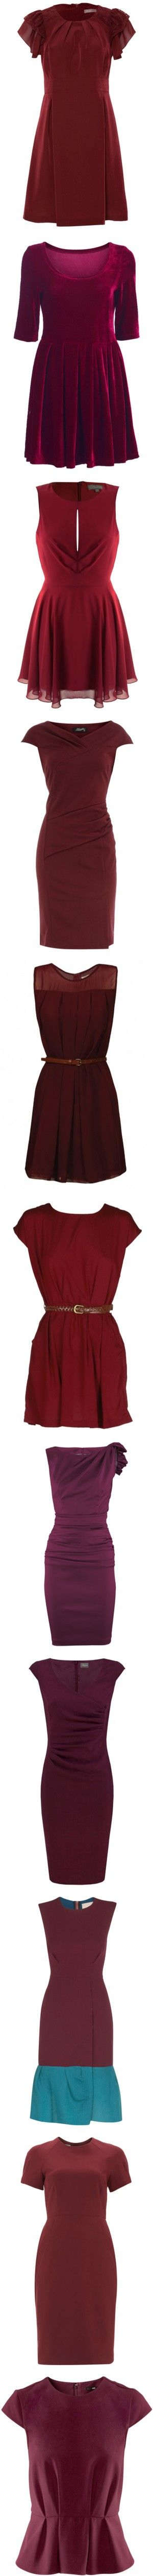 """""""burgandy oxblood maroon ideas"""" by countrycousin ❤ liked on Polyvore"""